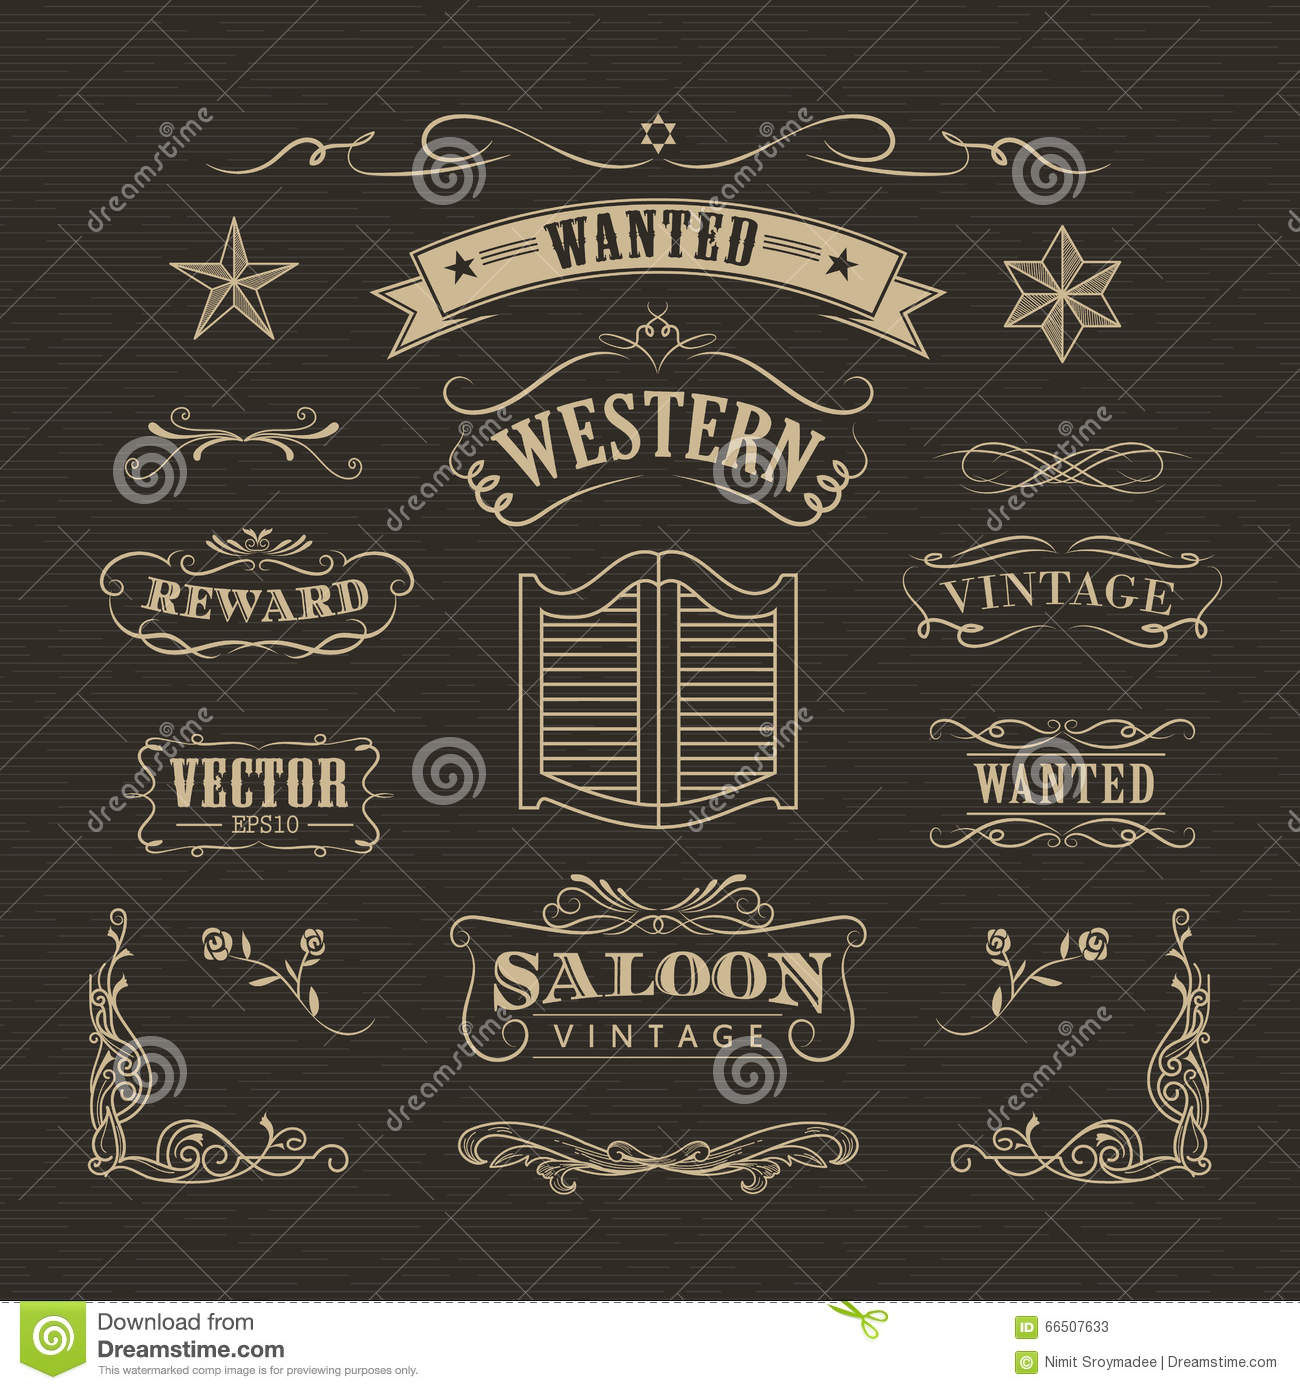 Design country western logo yourself